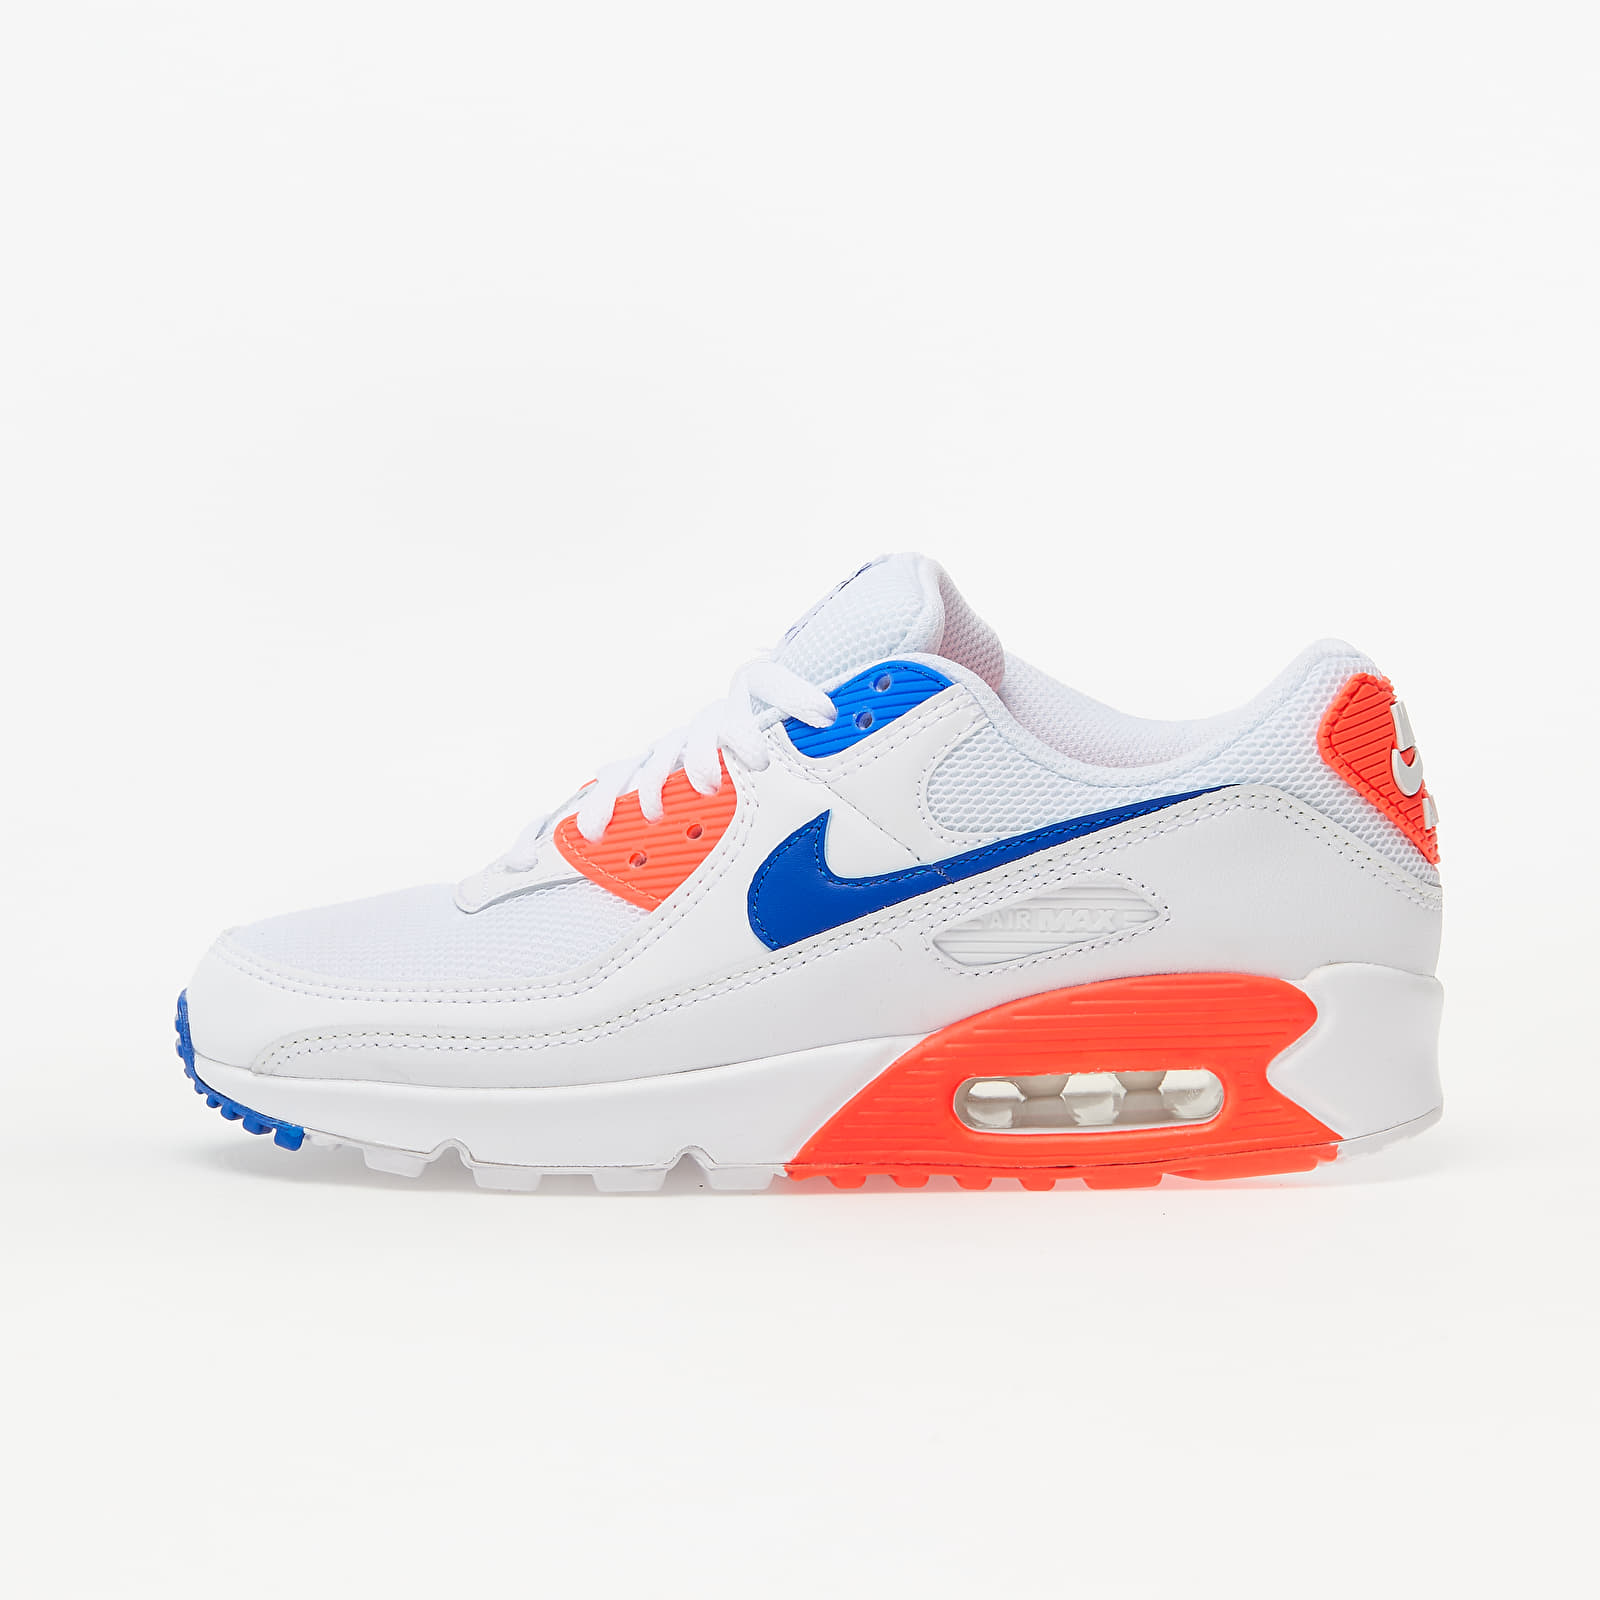 Nike W Air Max 90 White/ Racer Blue-Flash Crimson EUR 38.5